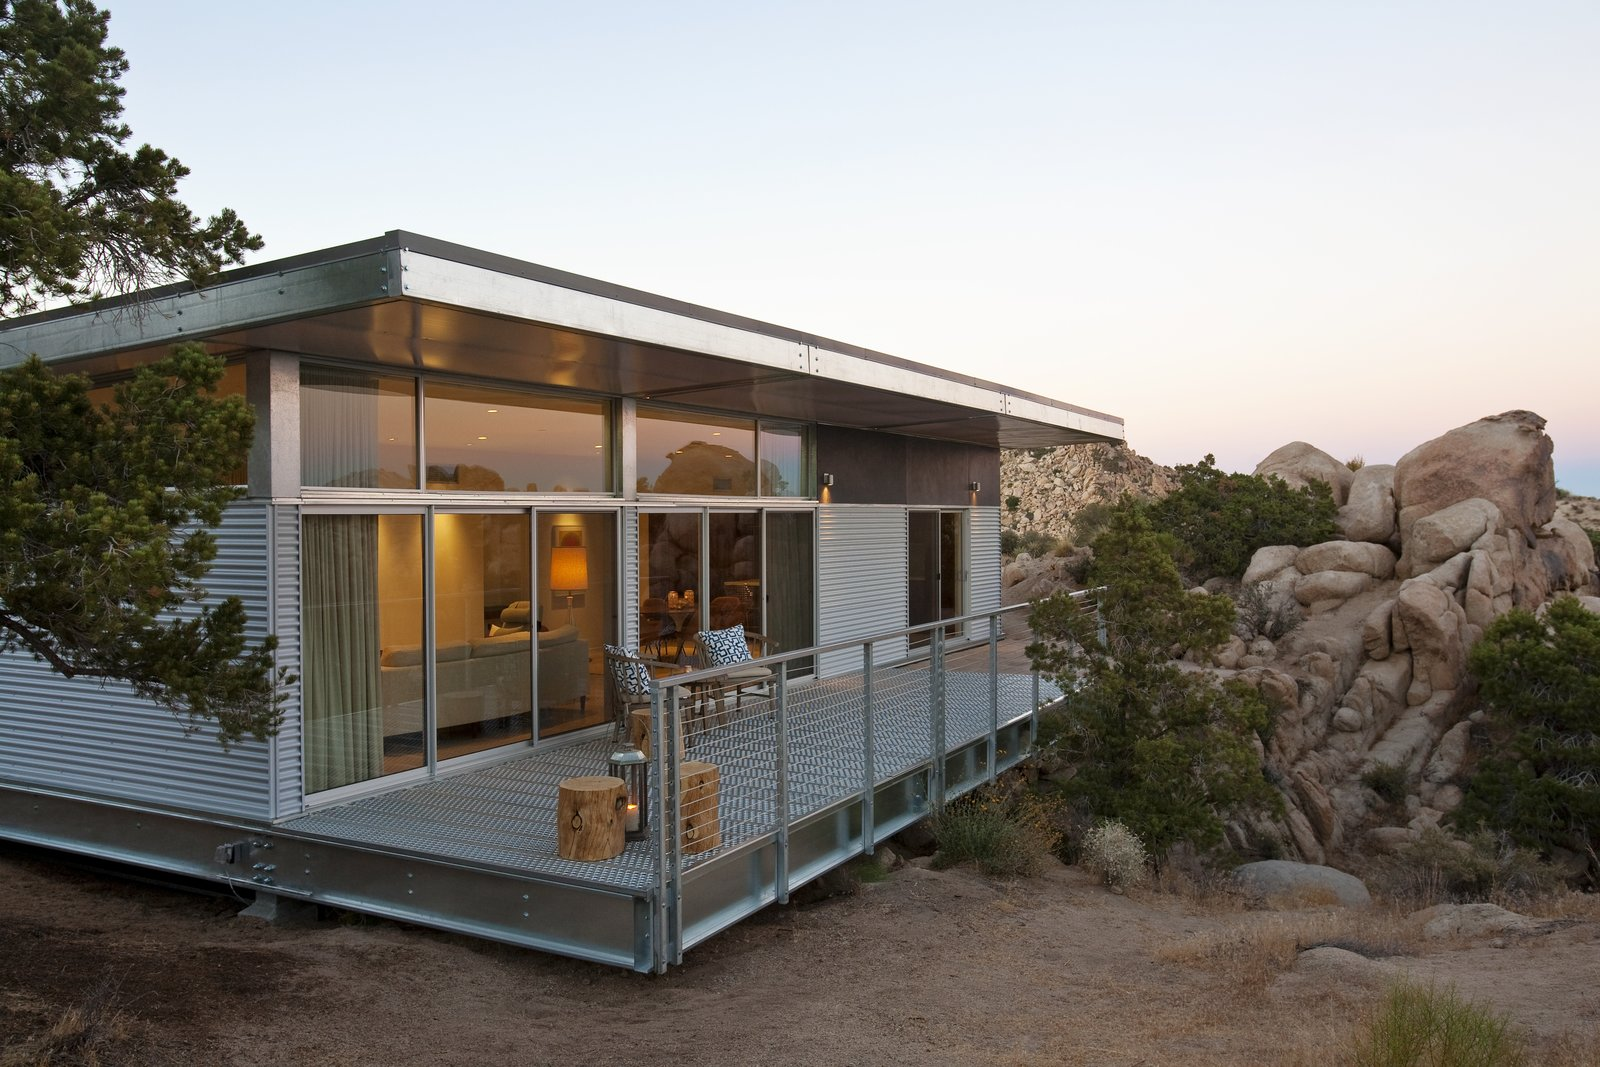 Best Kitchen Gallery: 10 Steel Prefabs That Are Both Modern And Practical Dwell of Build Steel Home on rachelxblog.com